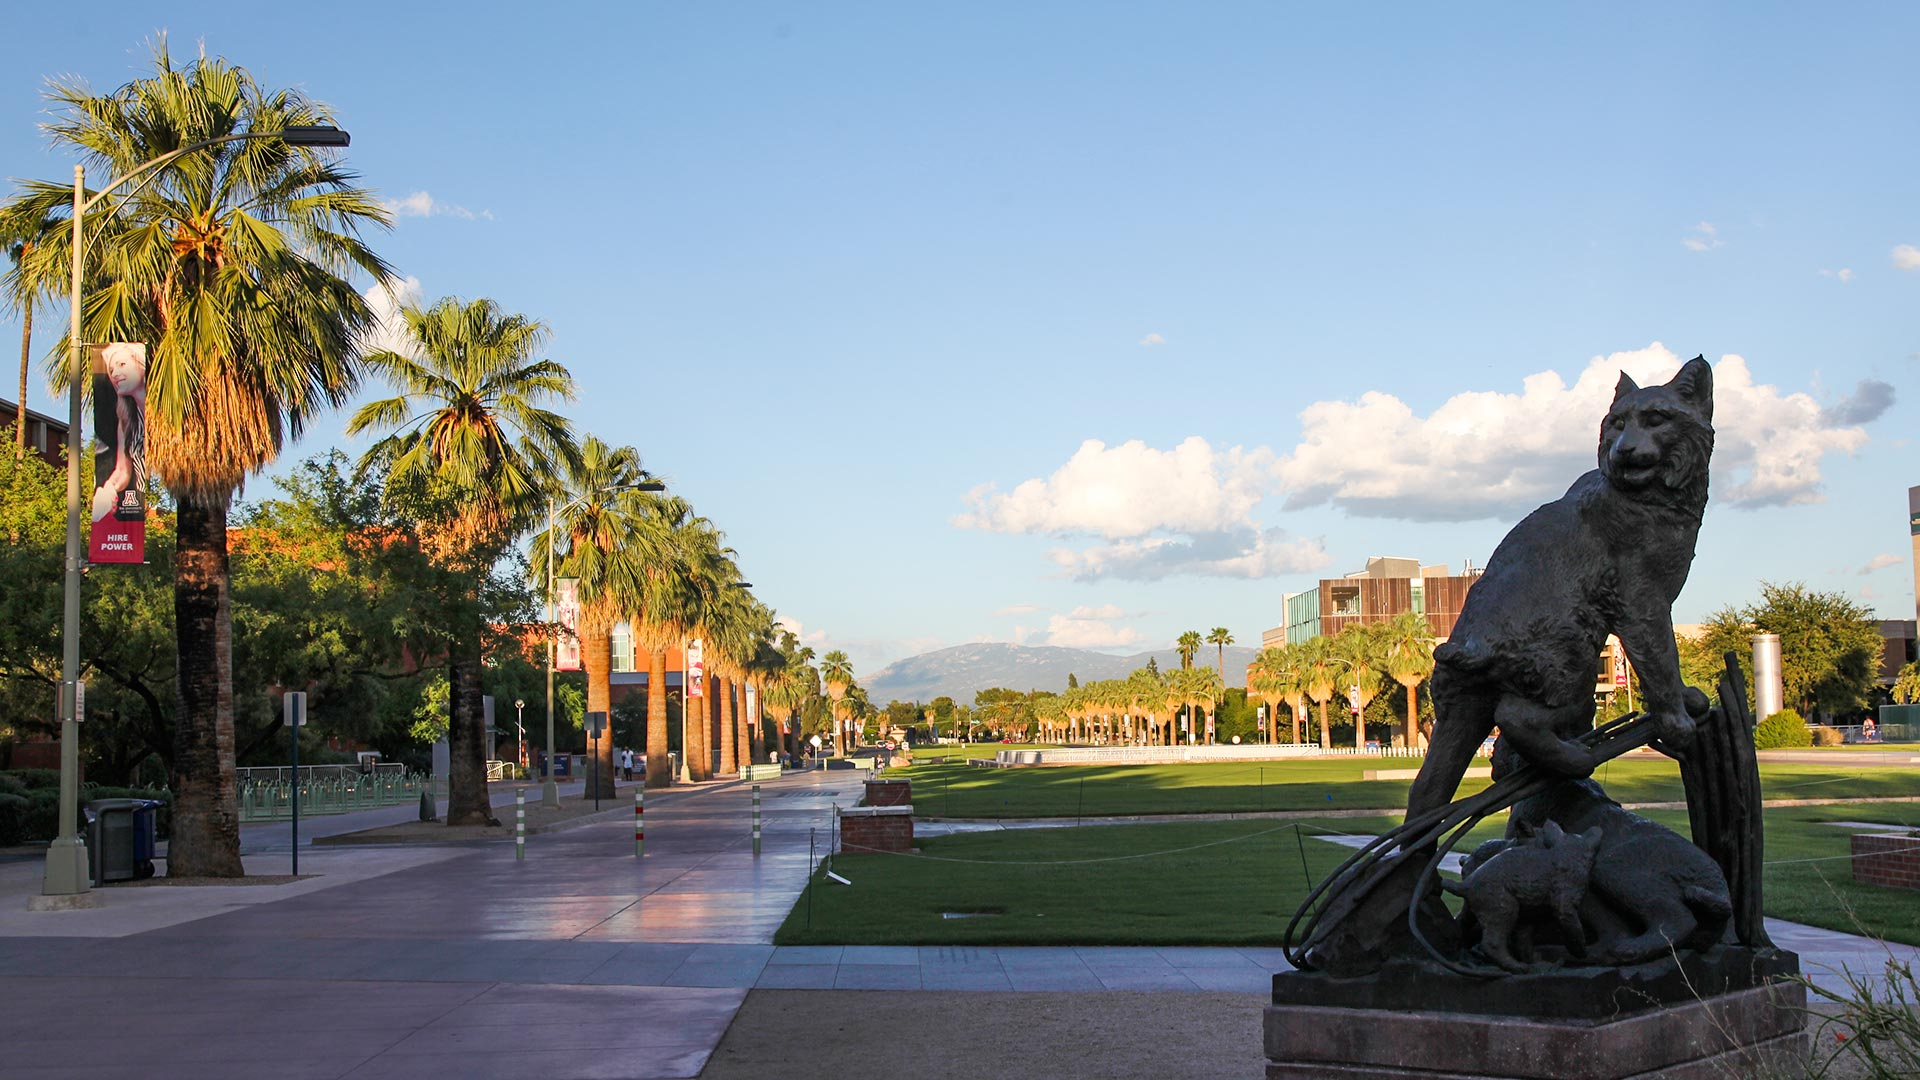 Looking east along the University of Arizona campus mall.